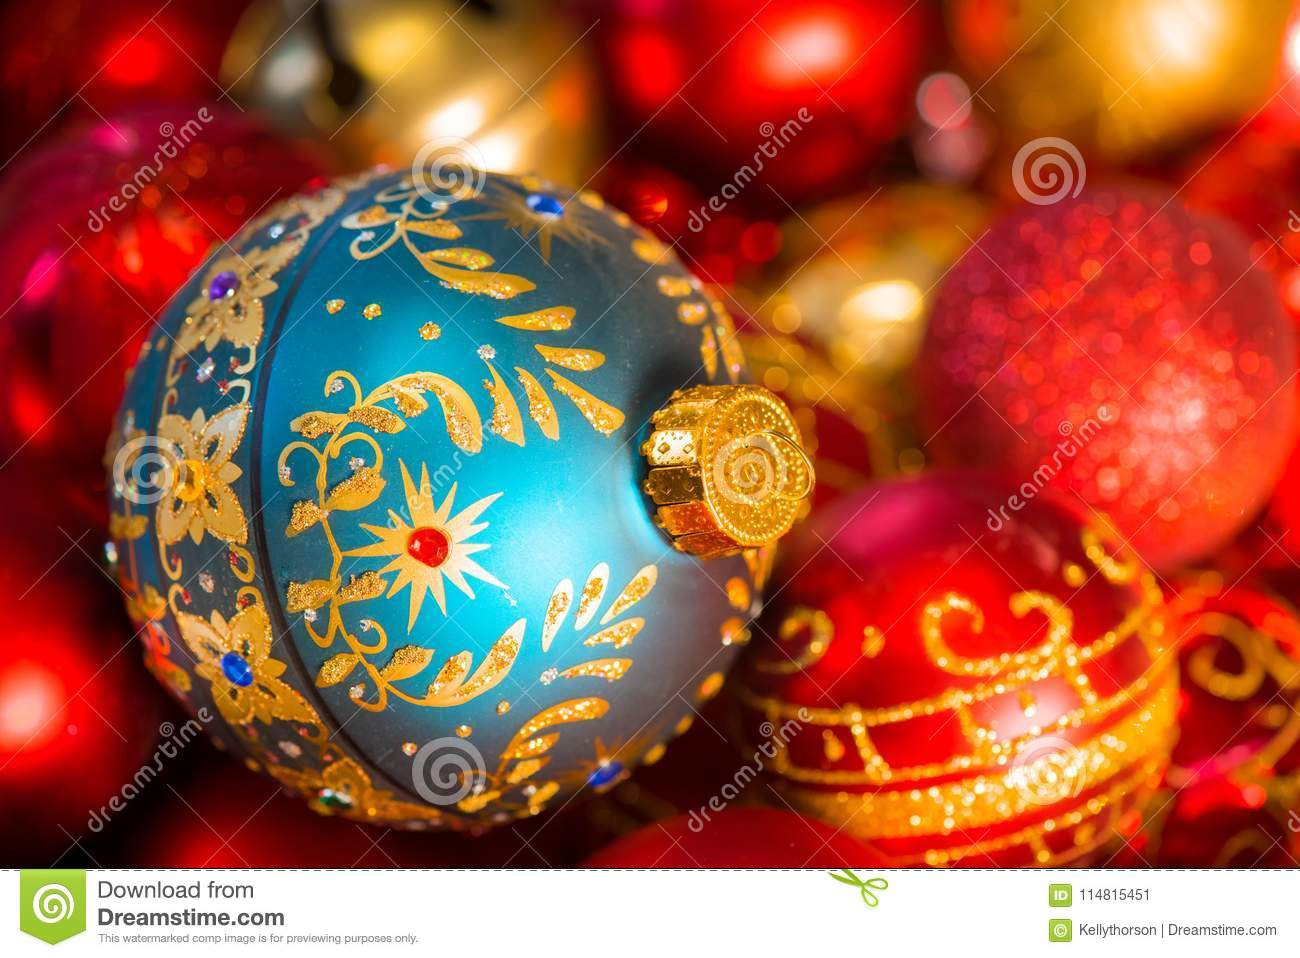 Fancy Teal Christmas Tree Ornament With Red And Gold Decorations Stock Image Image Of Smaller Turquoise 114815451